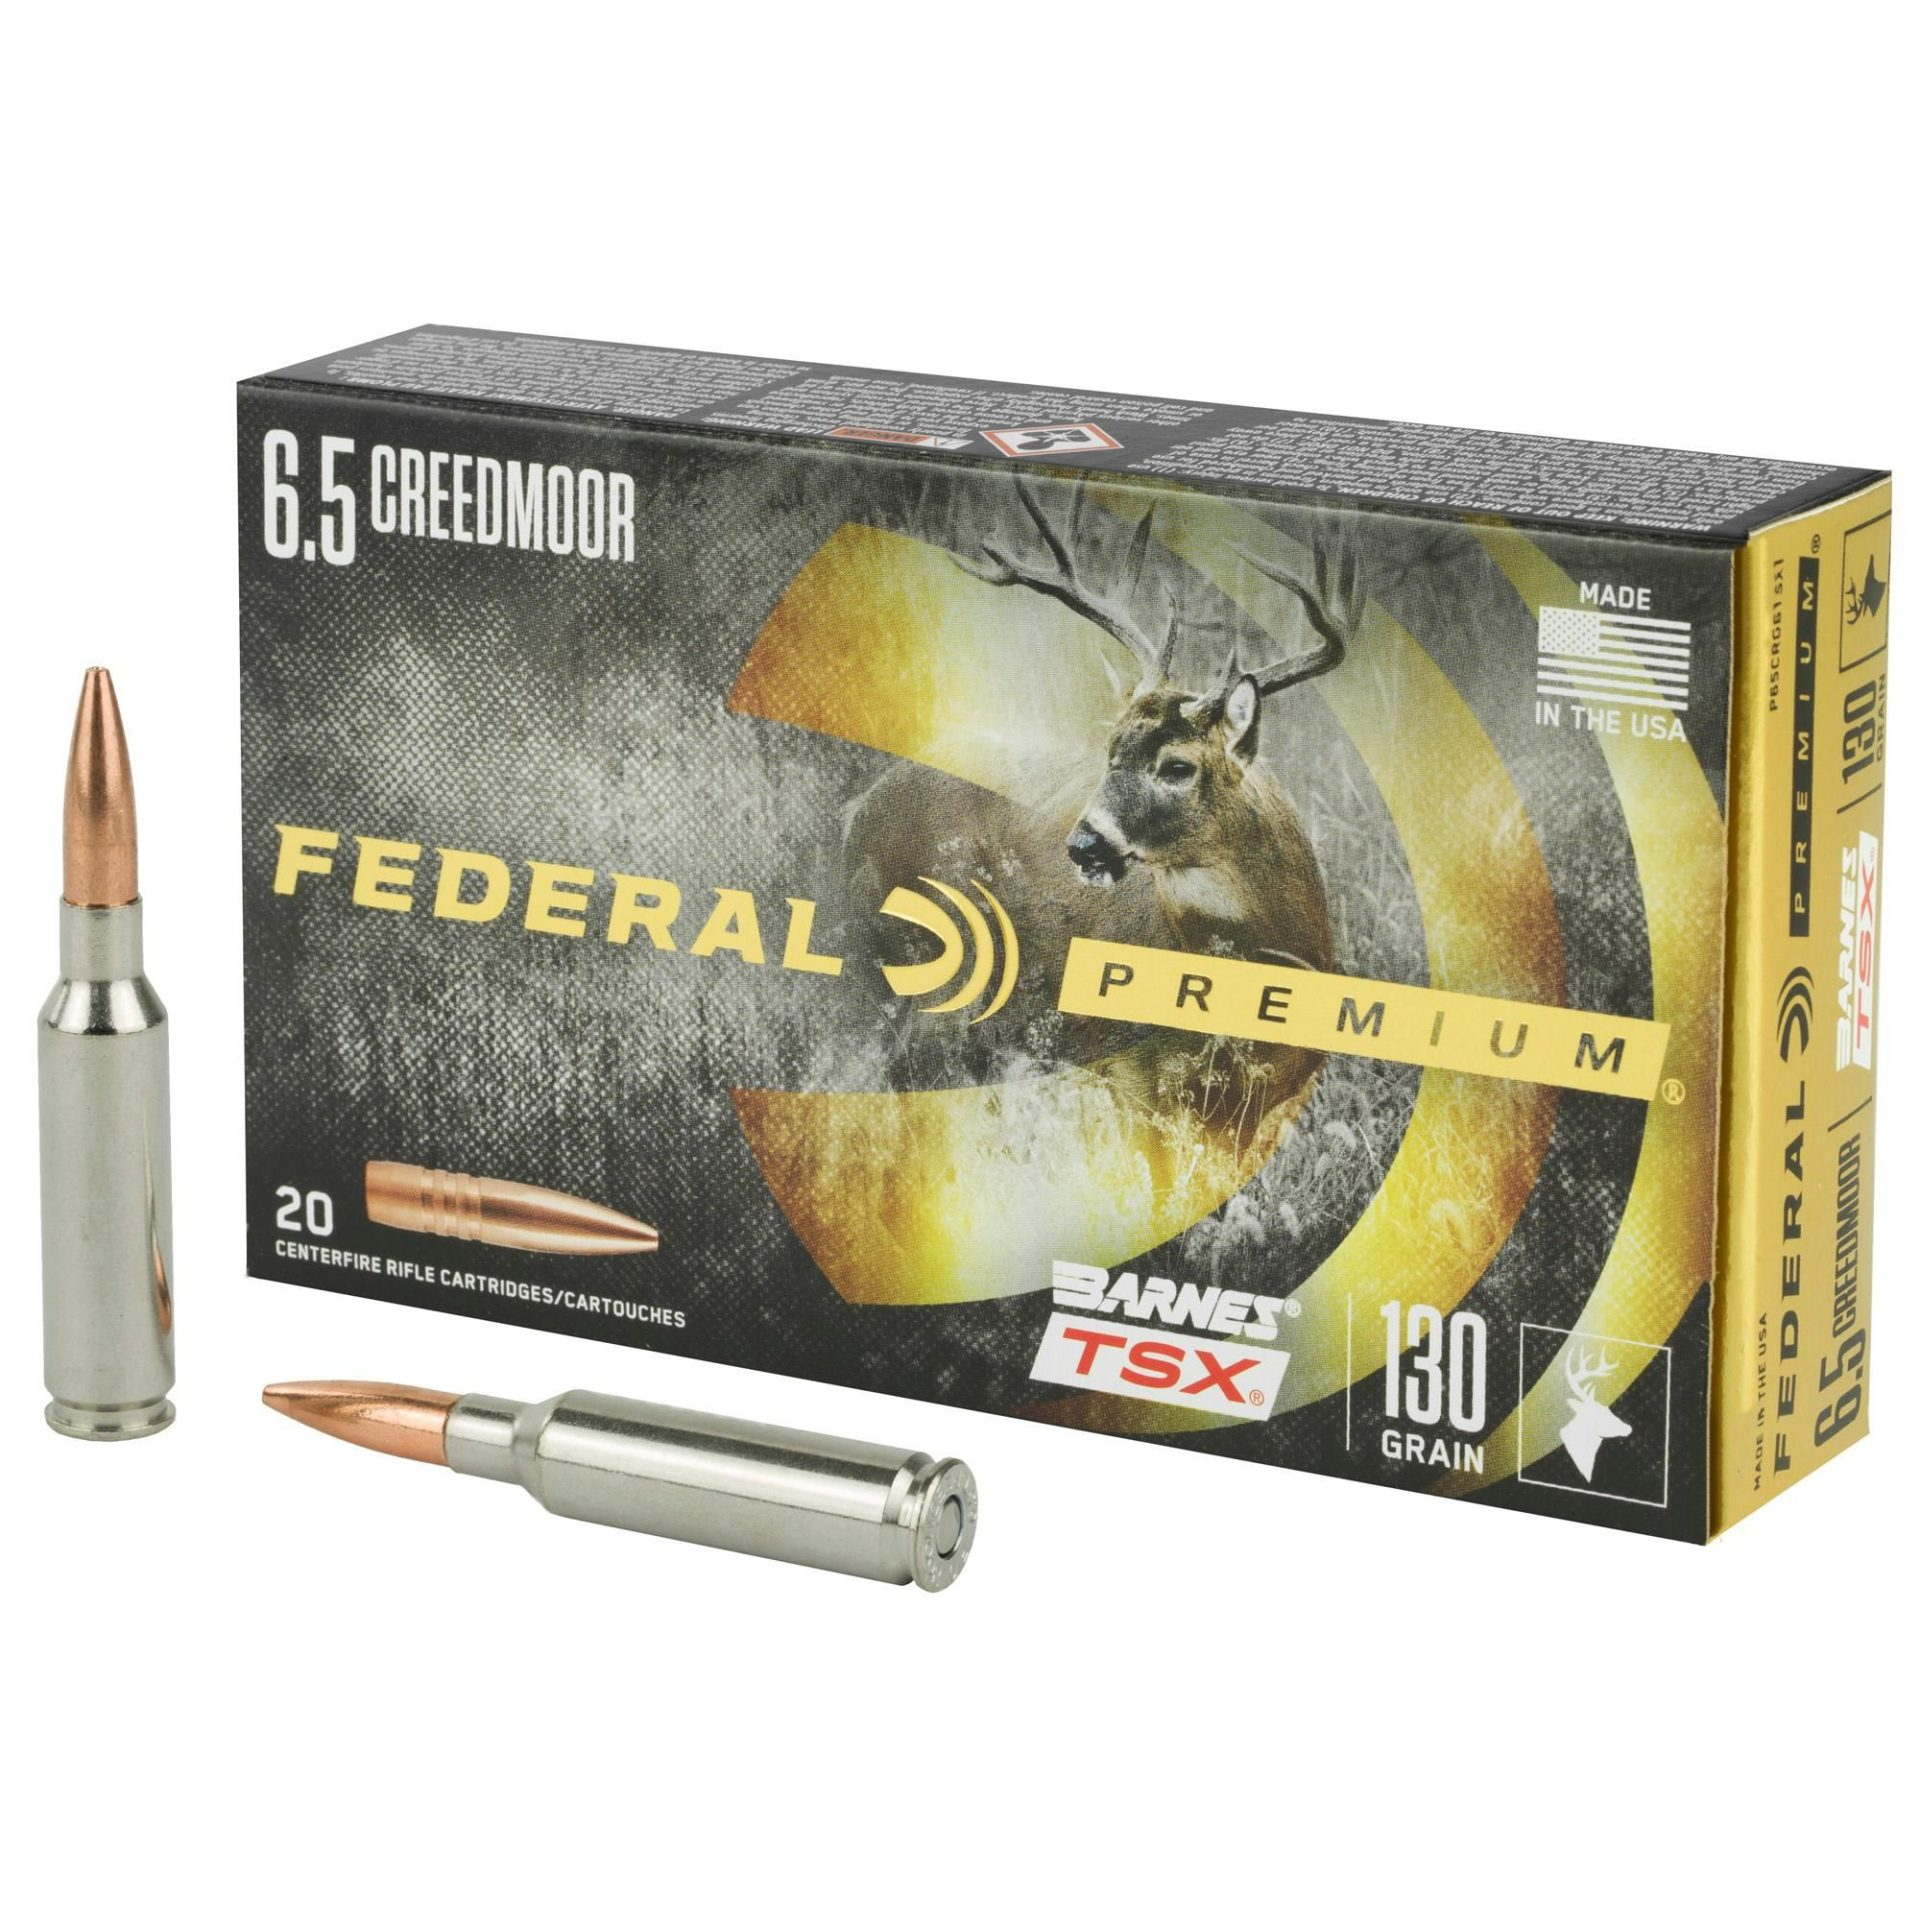 Federal Premium 130-grain Barnes TSX provided premium, varmint rifle-like accuracy and one-shot, dead-in-their-tracks kills on both an antelope and elk hunt.